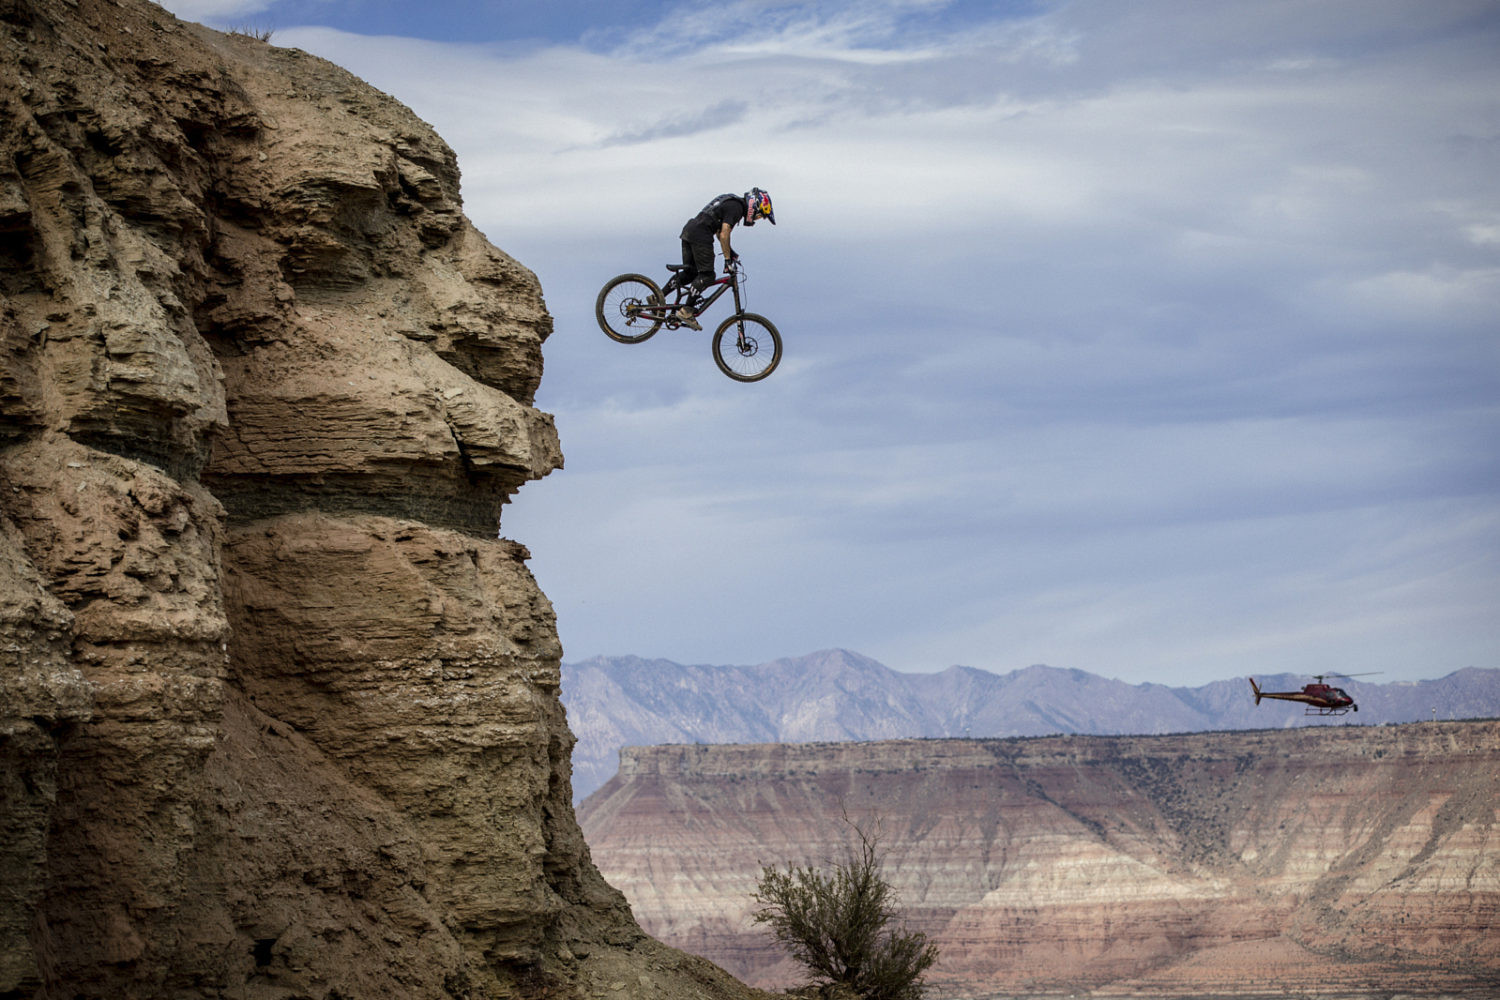 25 Powerful Photos Of Bikes Up In The Air To Excite Your Day